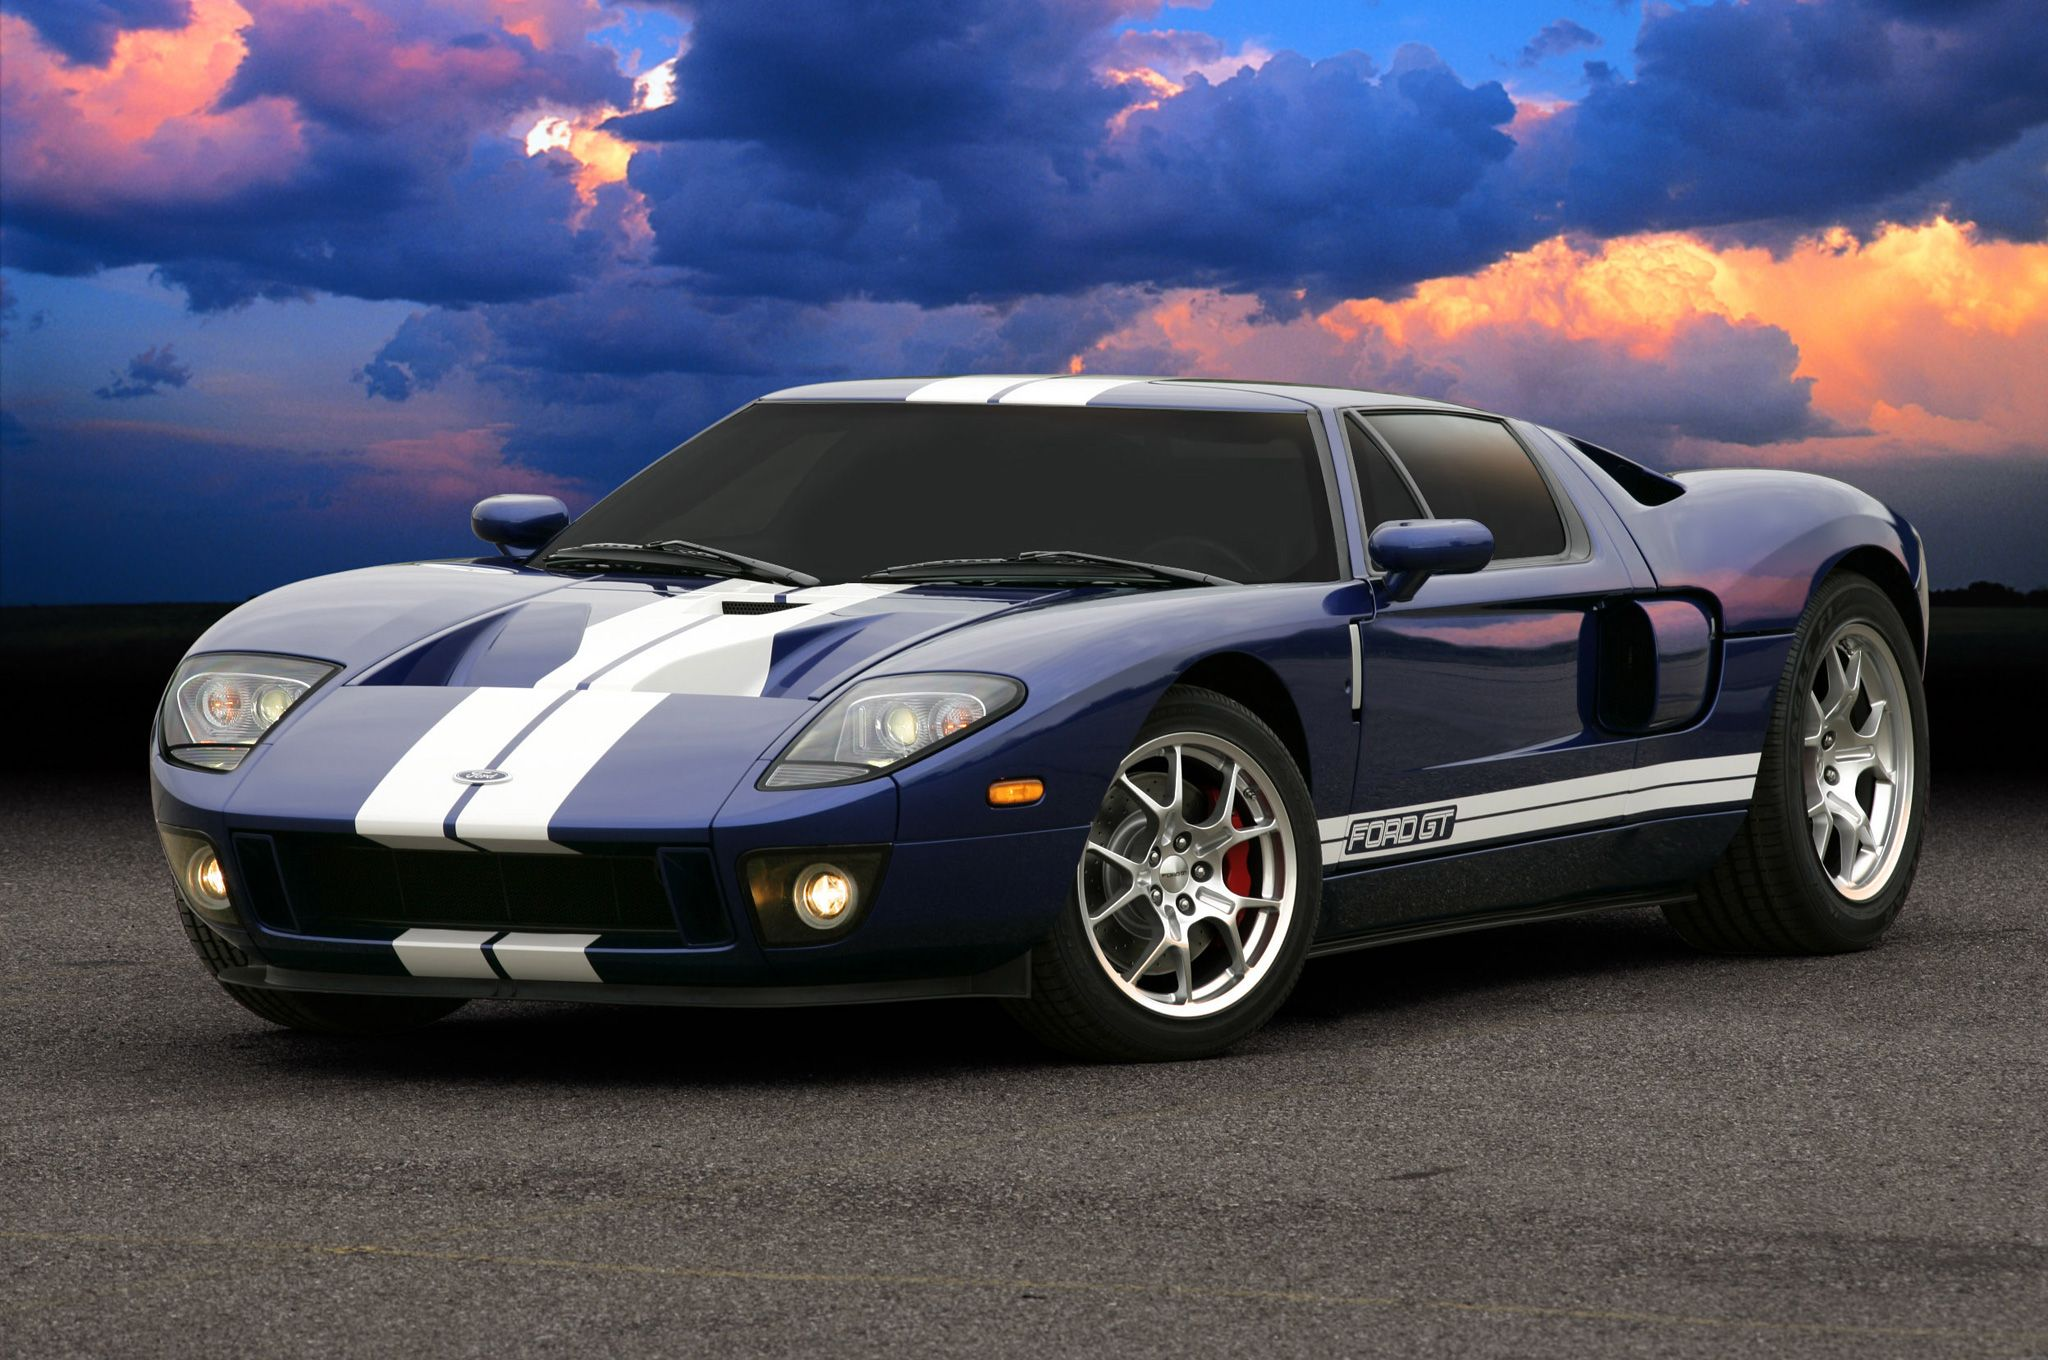 2005 Ford GT 500 | Automobiles | Pinterest | Gt 500, Ford GT and Ford